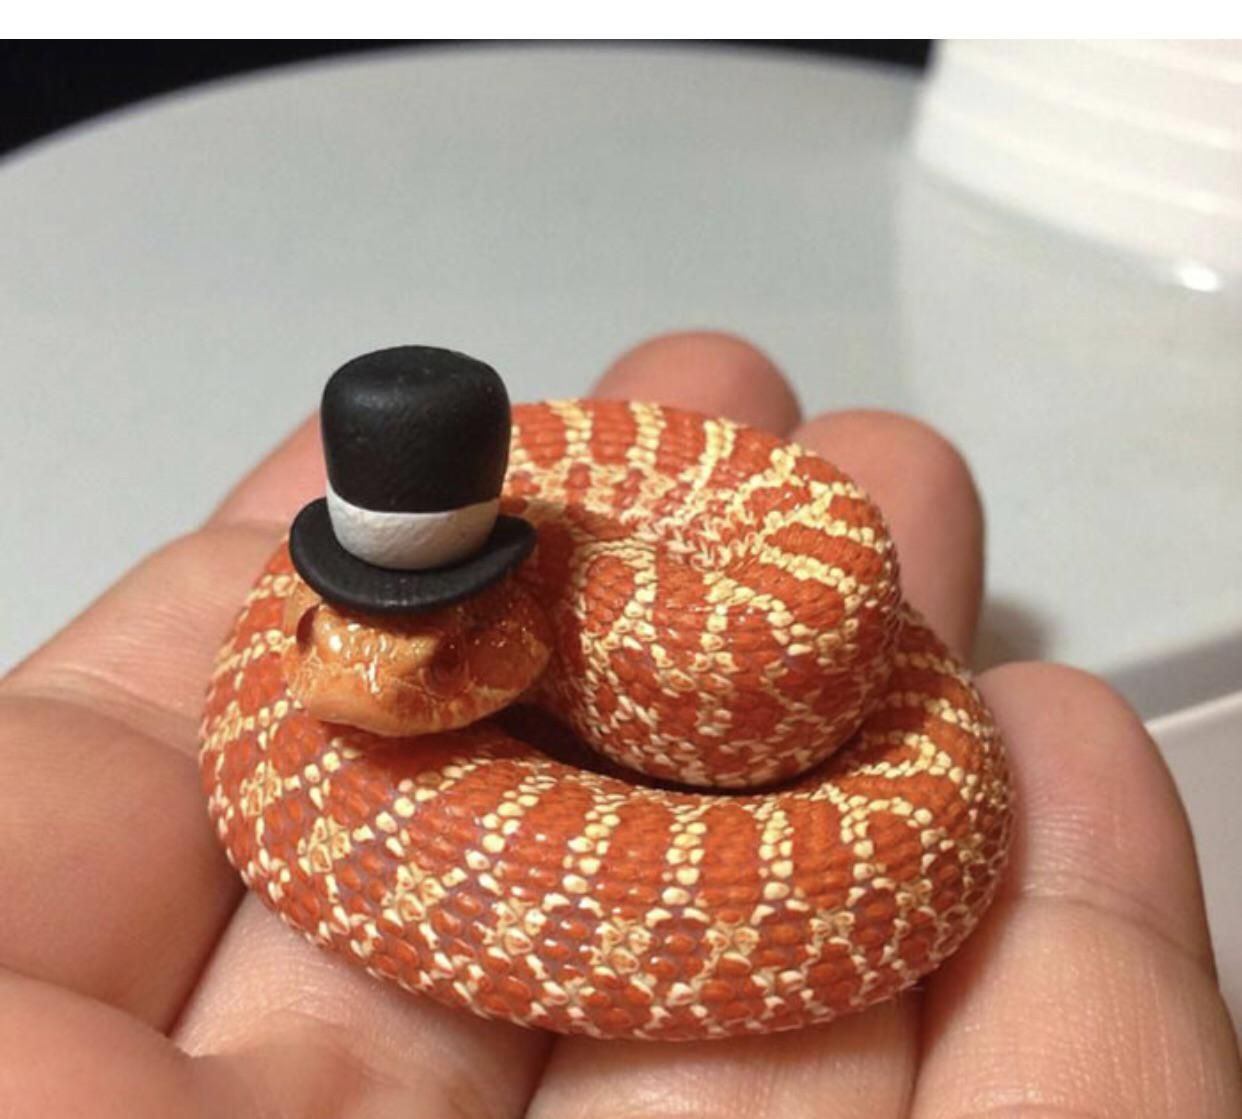 Snakes with hats. Say no more.